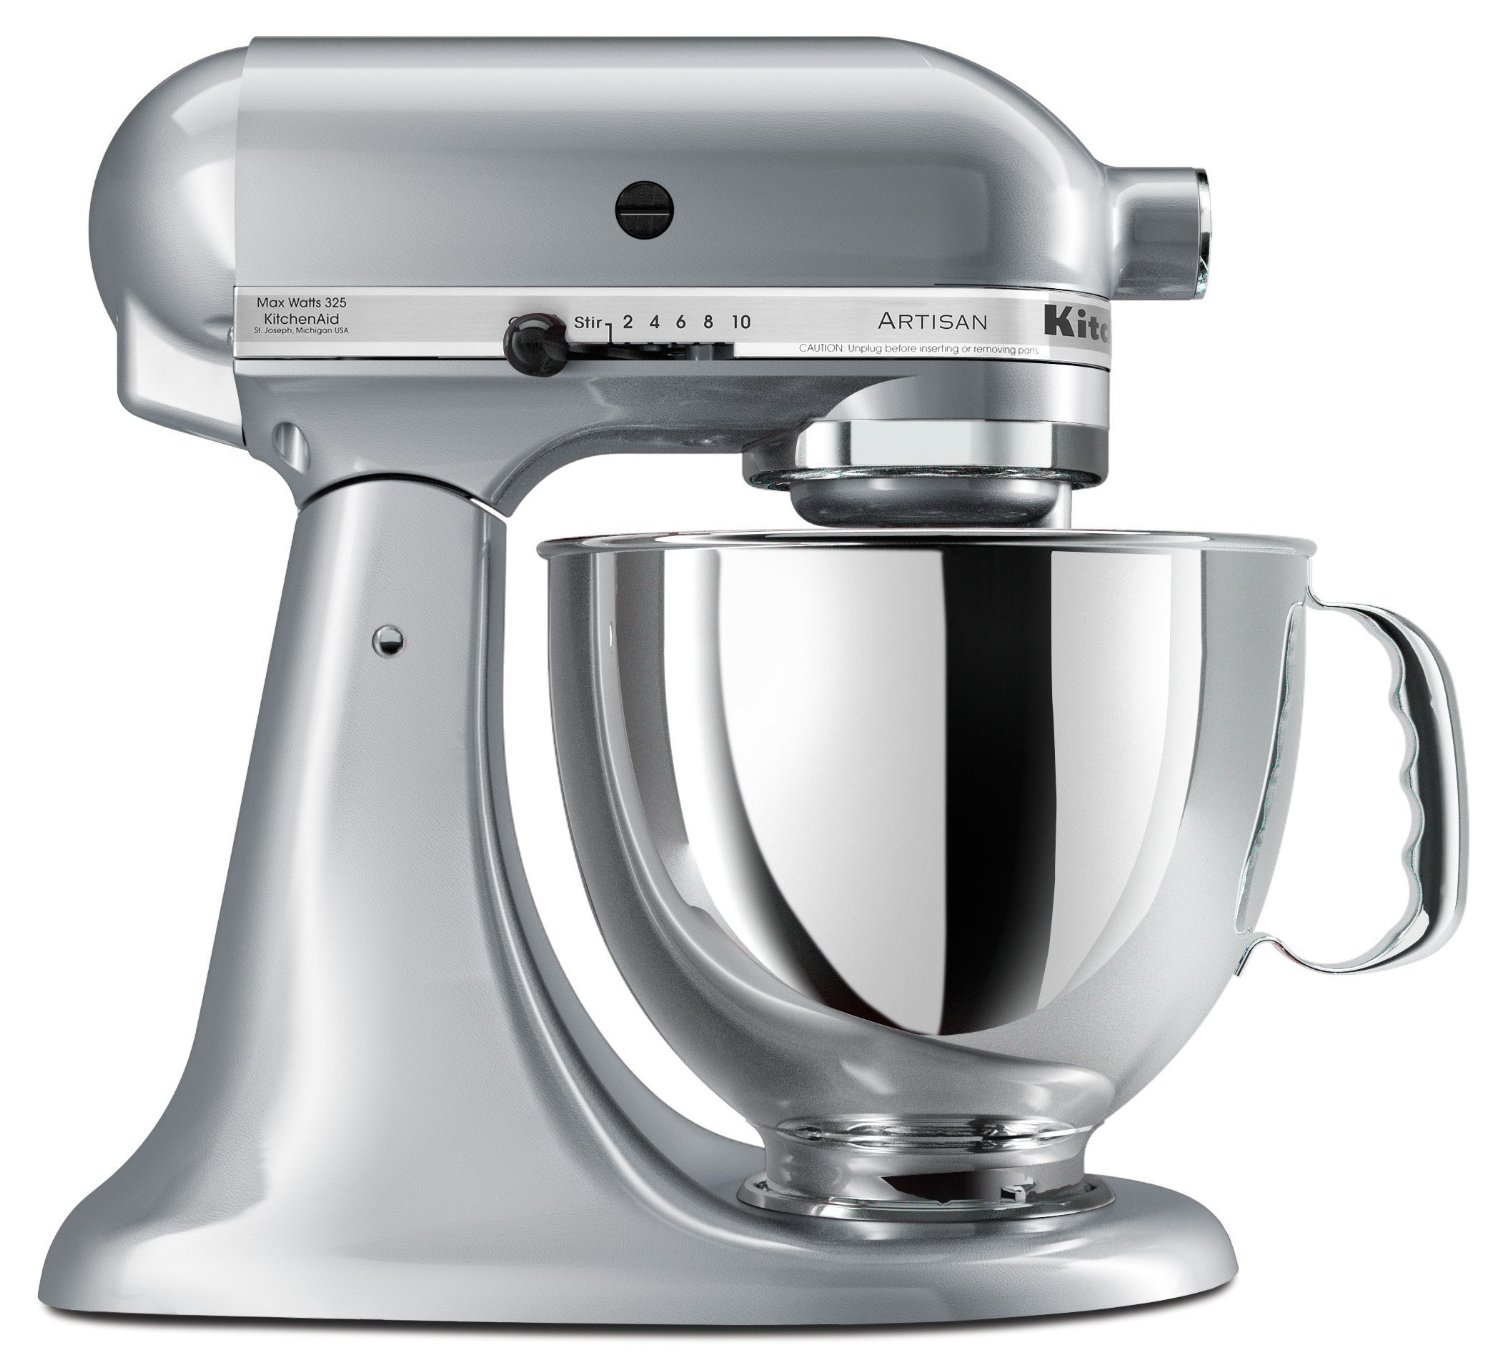 Outstanding KitchenAid Stand Mixer 1500 x 1357 · 192 kB · jpeg